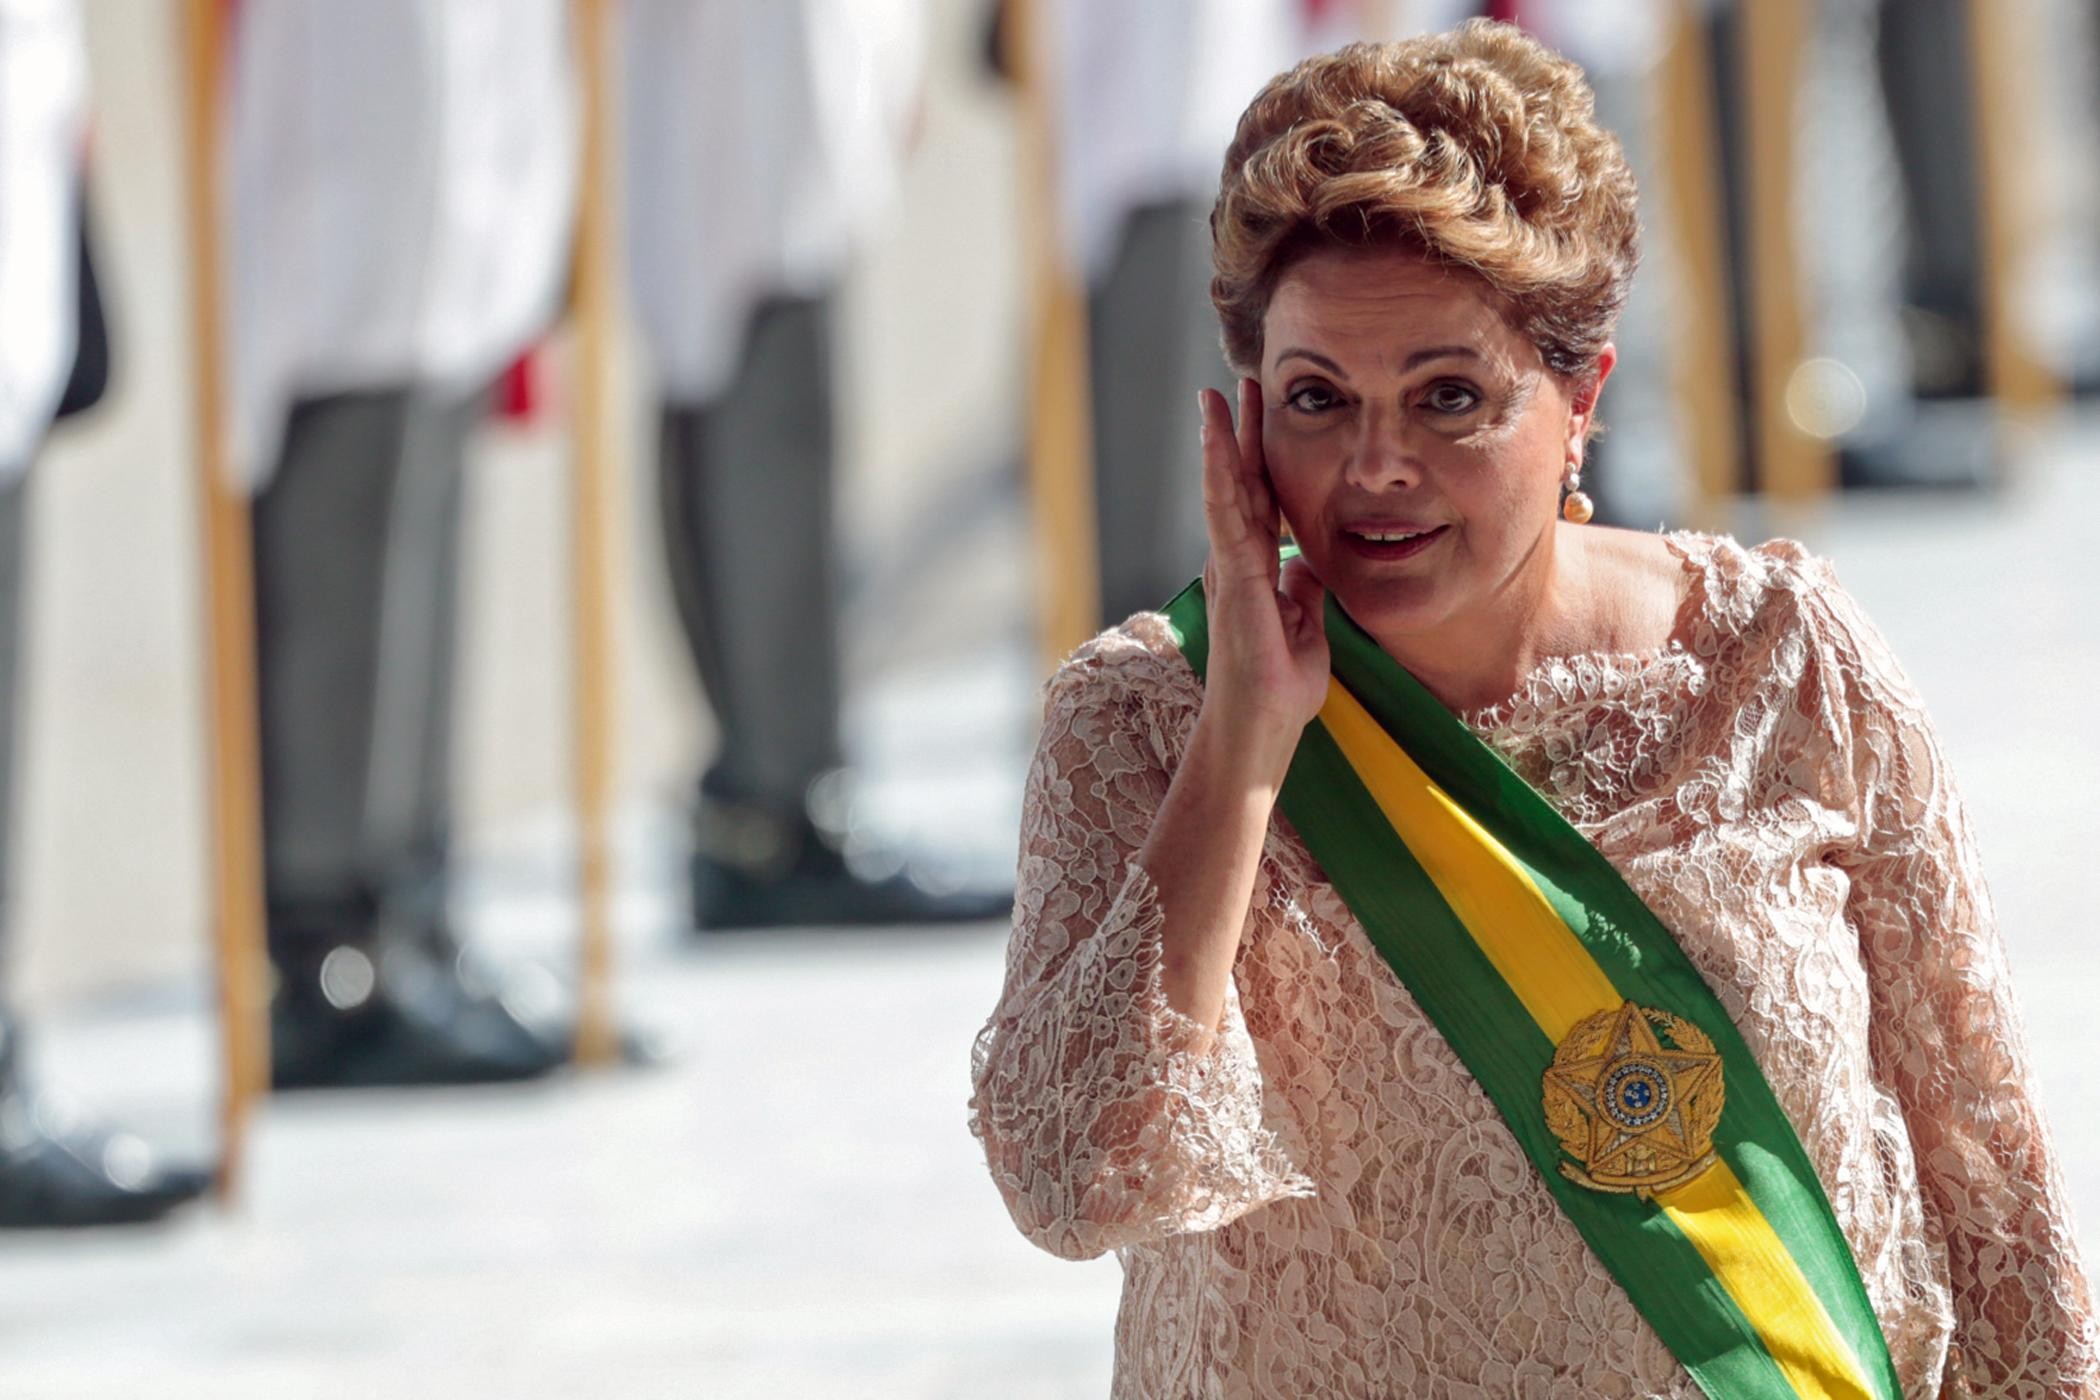 Brazilian President Dilma Rousseff gestures at Planalto Palace during her inauguration ceremony in Brasilia, January 1, 2015 (AFP Photo/Wenderson Araujo)